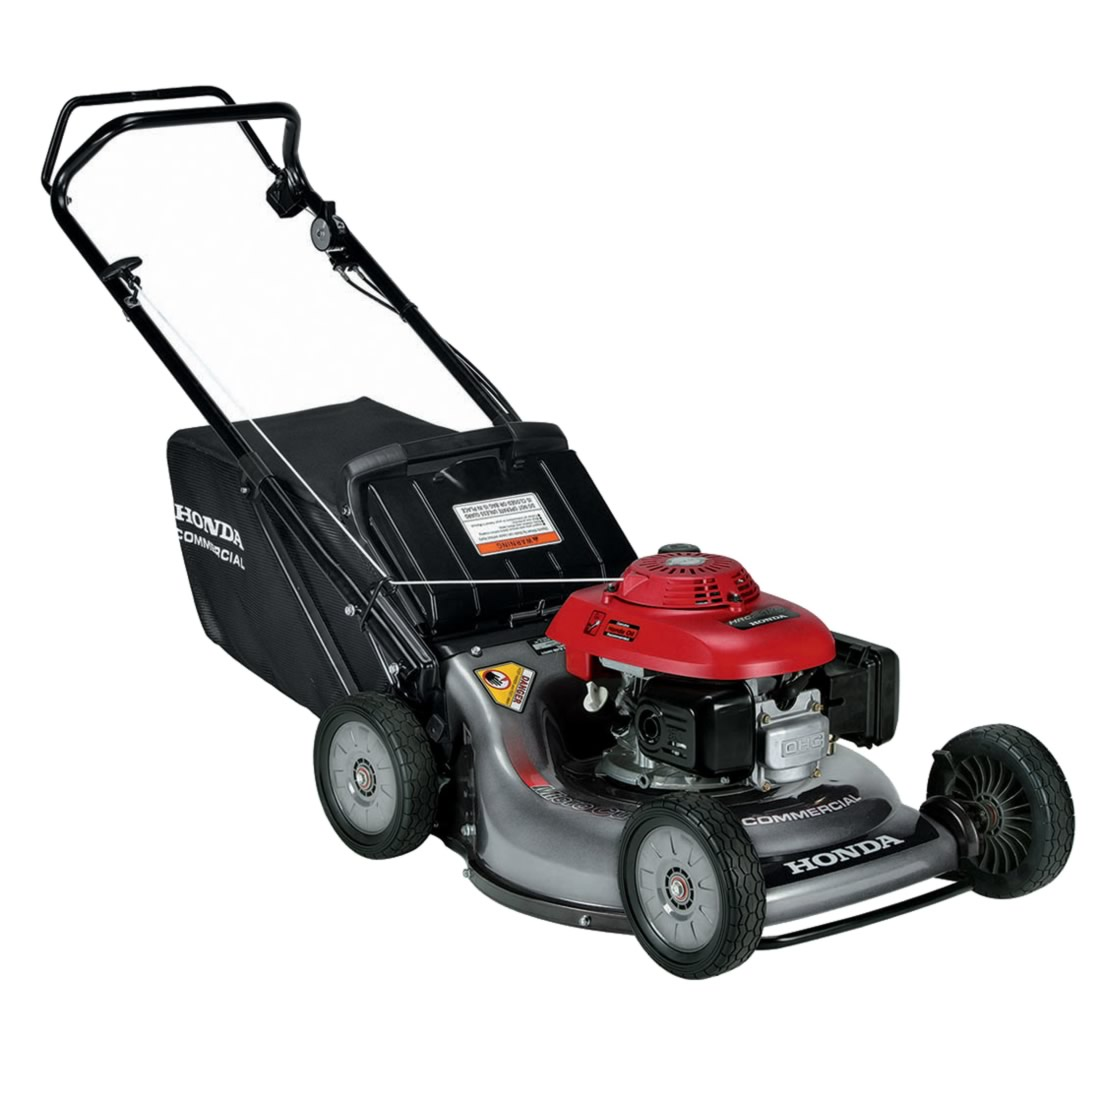 Honda S Lawn Mowers Are Widely Regarded As Some Of The Most Durable And Long Lasting In Industry Company Hrc Model Is Specifically Touted